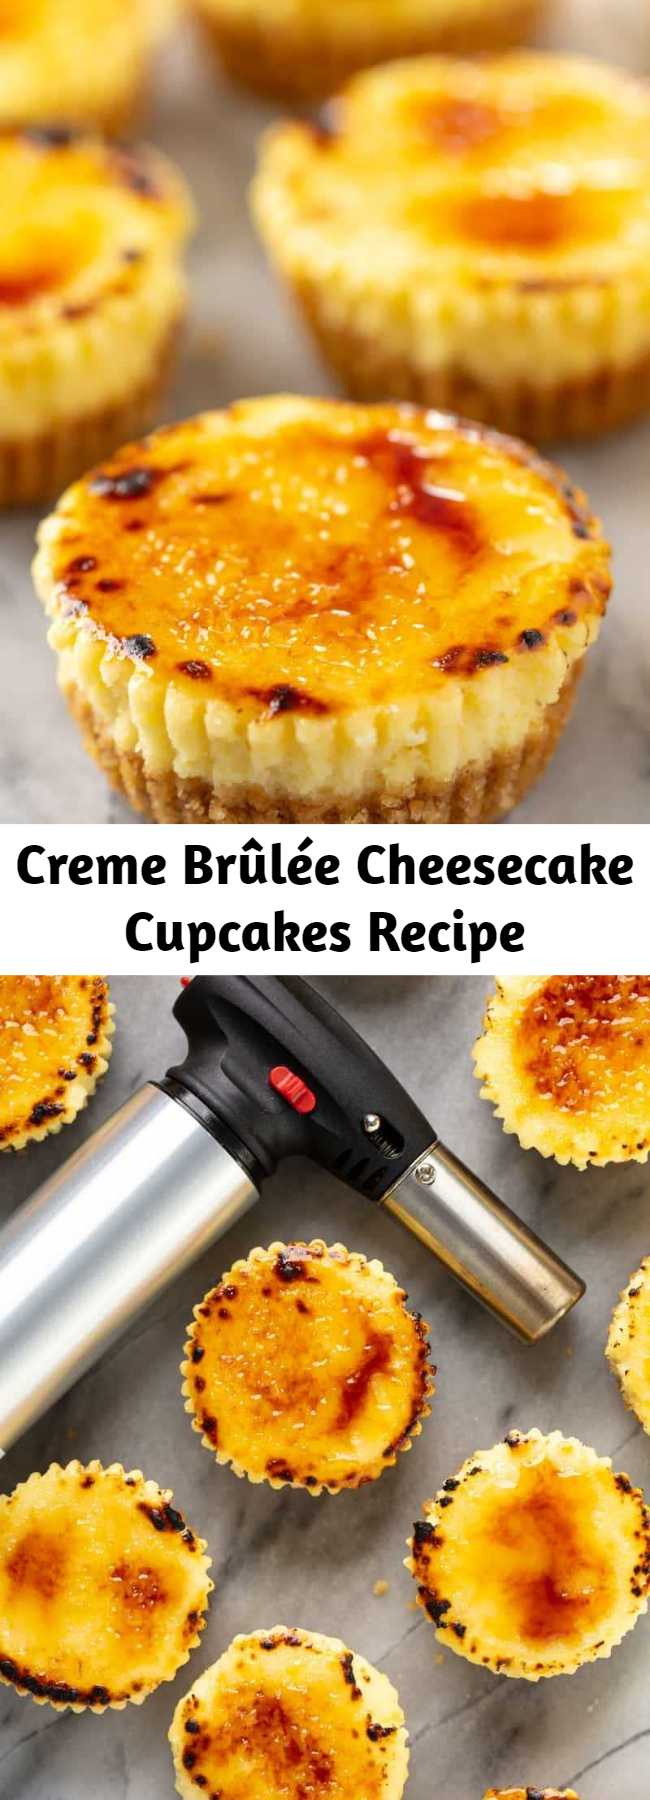 Creme Brûlée Cheesecake Cupcakes Recipe - All of the delicious flavors of creme brûlée in an easy to make mini cheesecake cupcake. You'll love these delicious little single serve desserts! #cheesecake #dessertrecipe